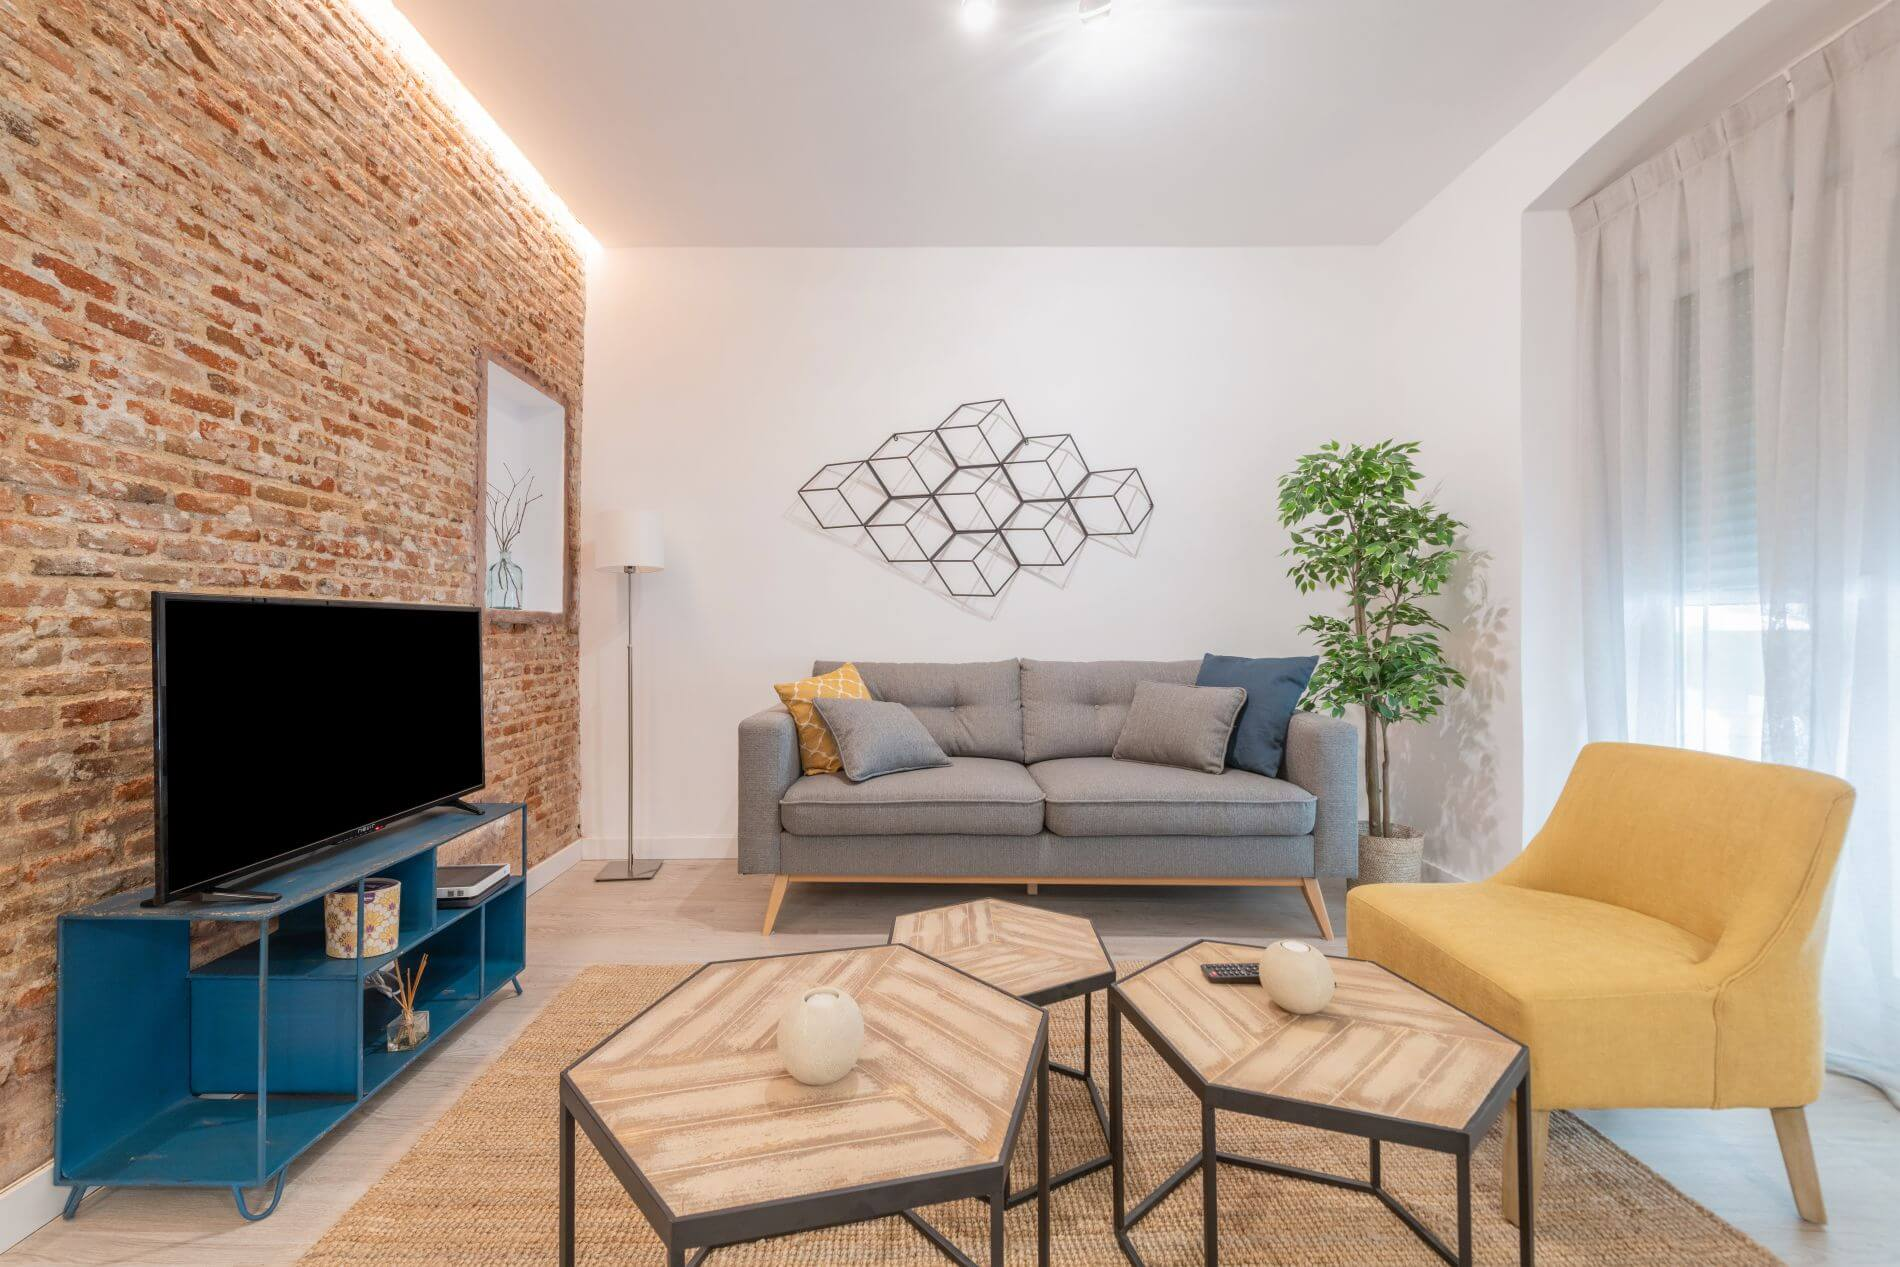 2 bedroom family-friendly serviced apartment in Madrid near Ventas